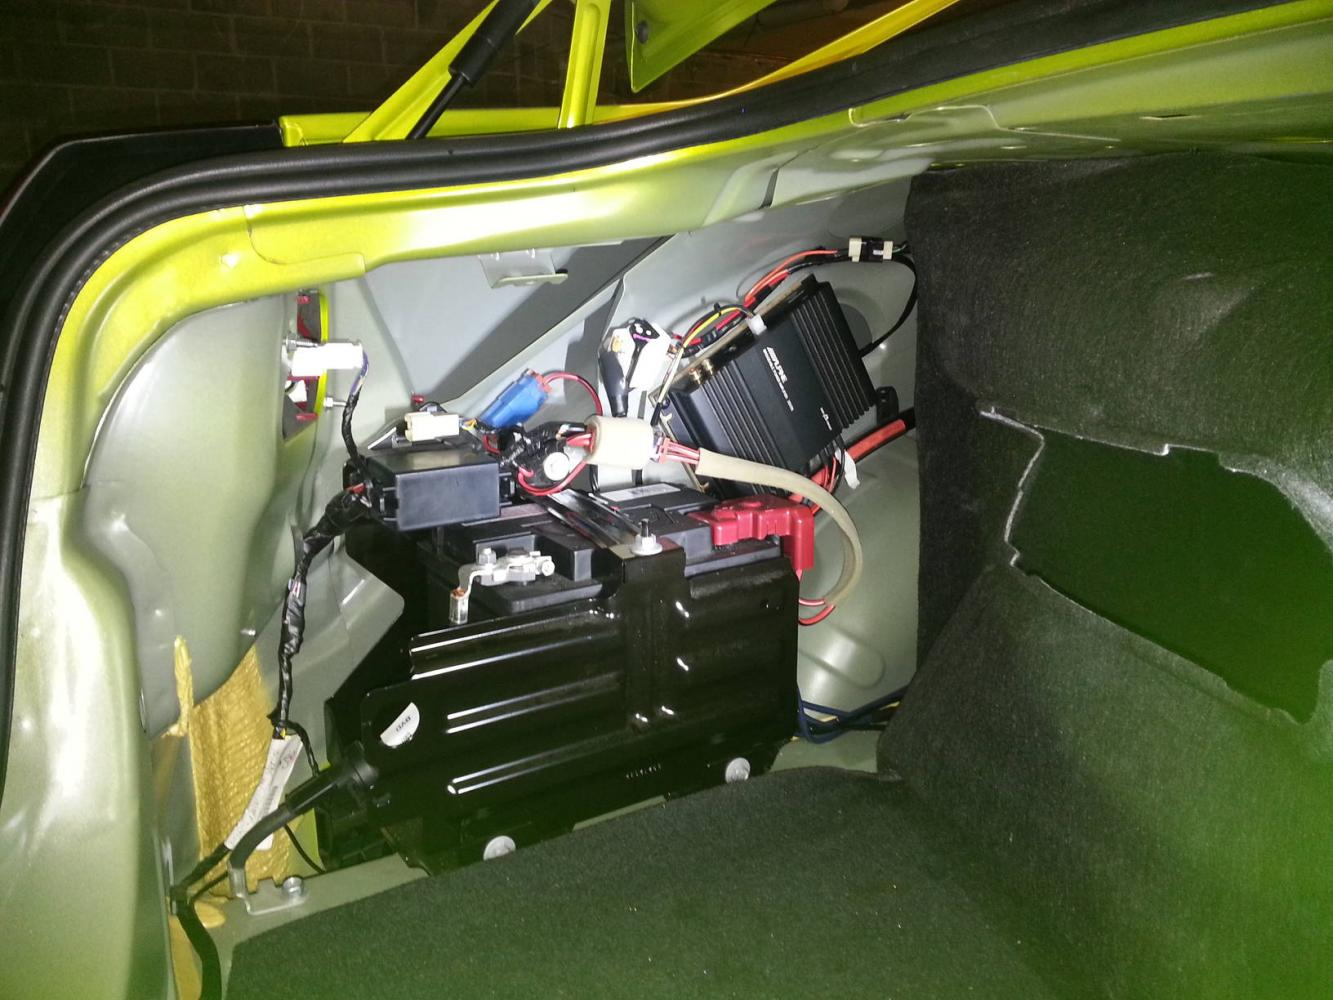 Amplifier install nxt to battery just commodores audio 2g cheapraybanclubmaster Image collections